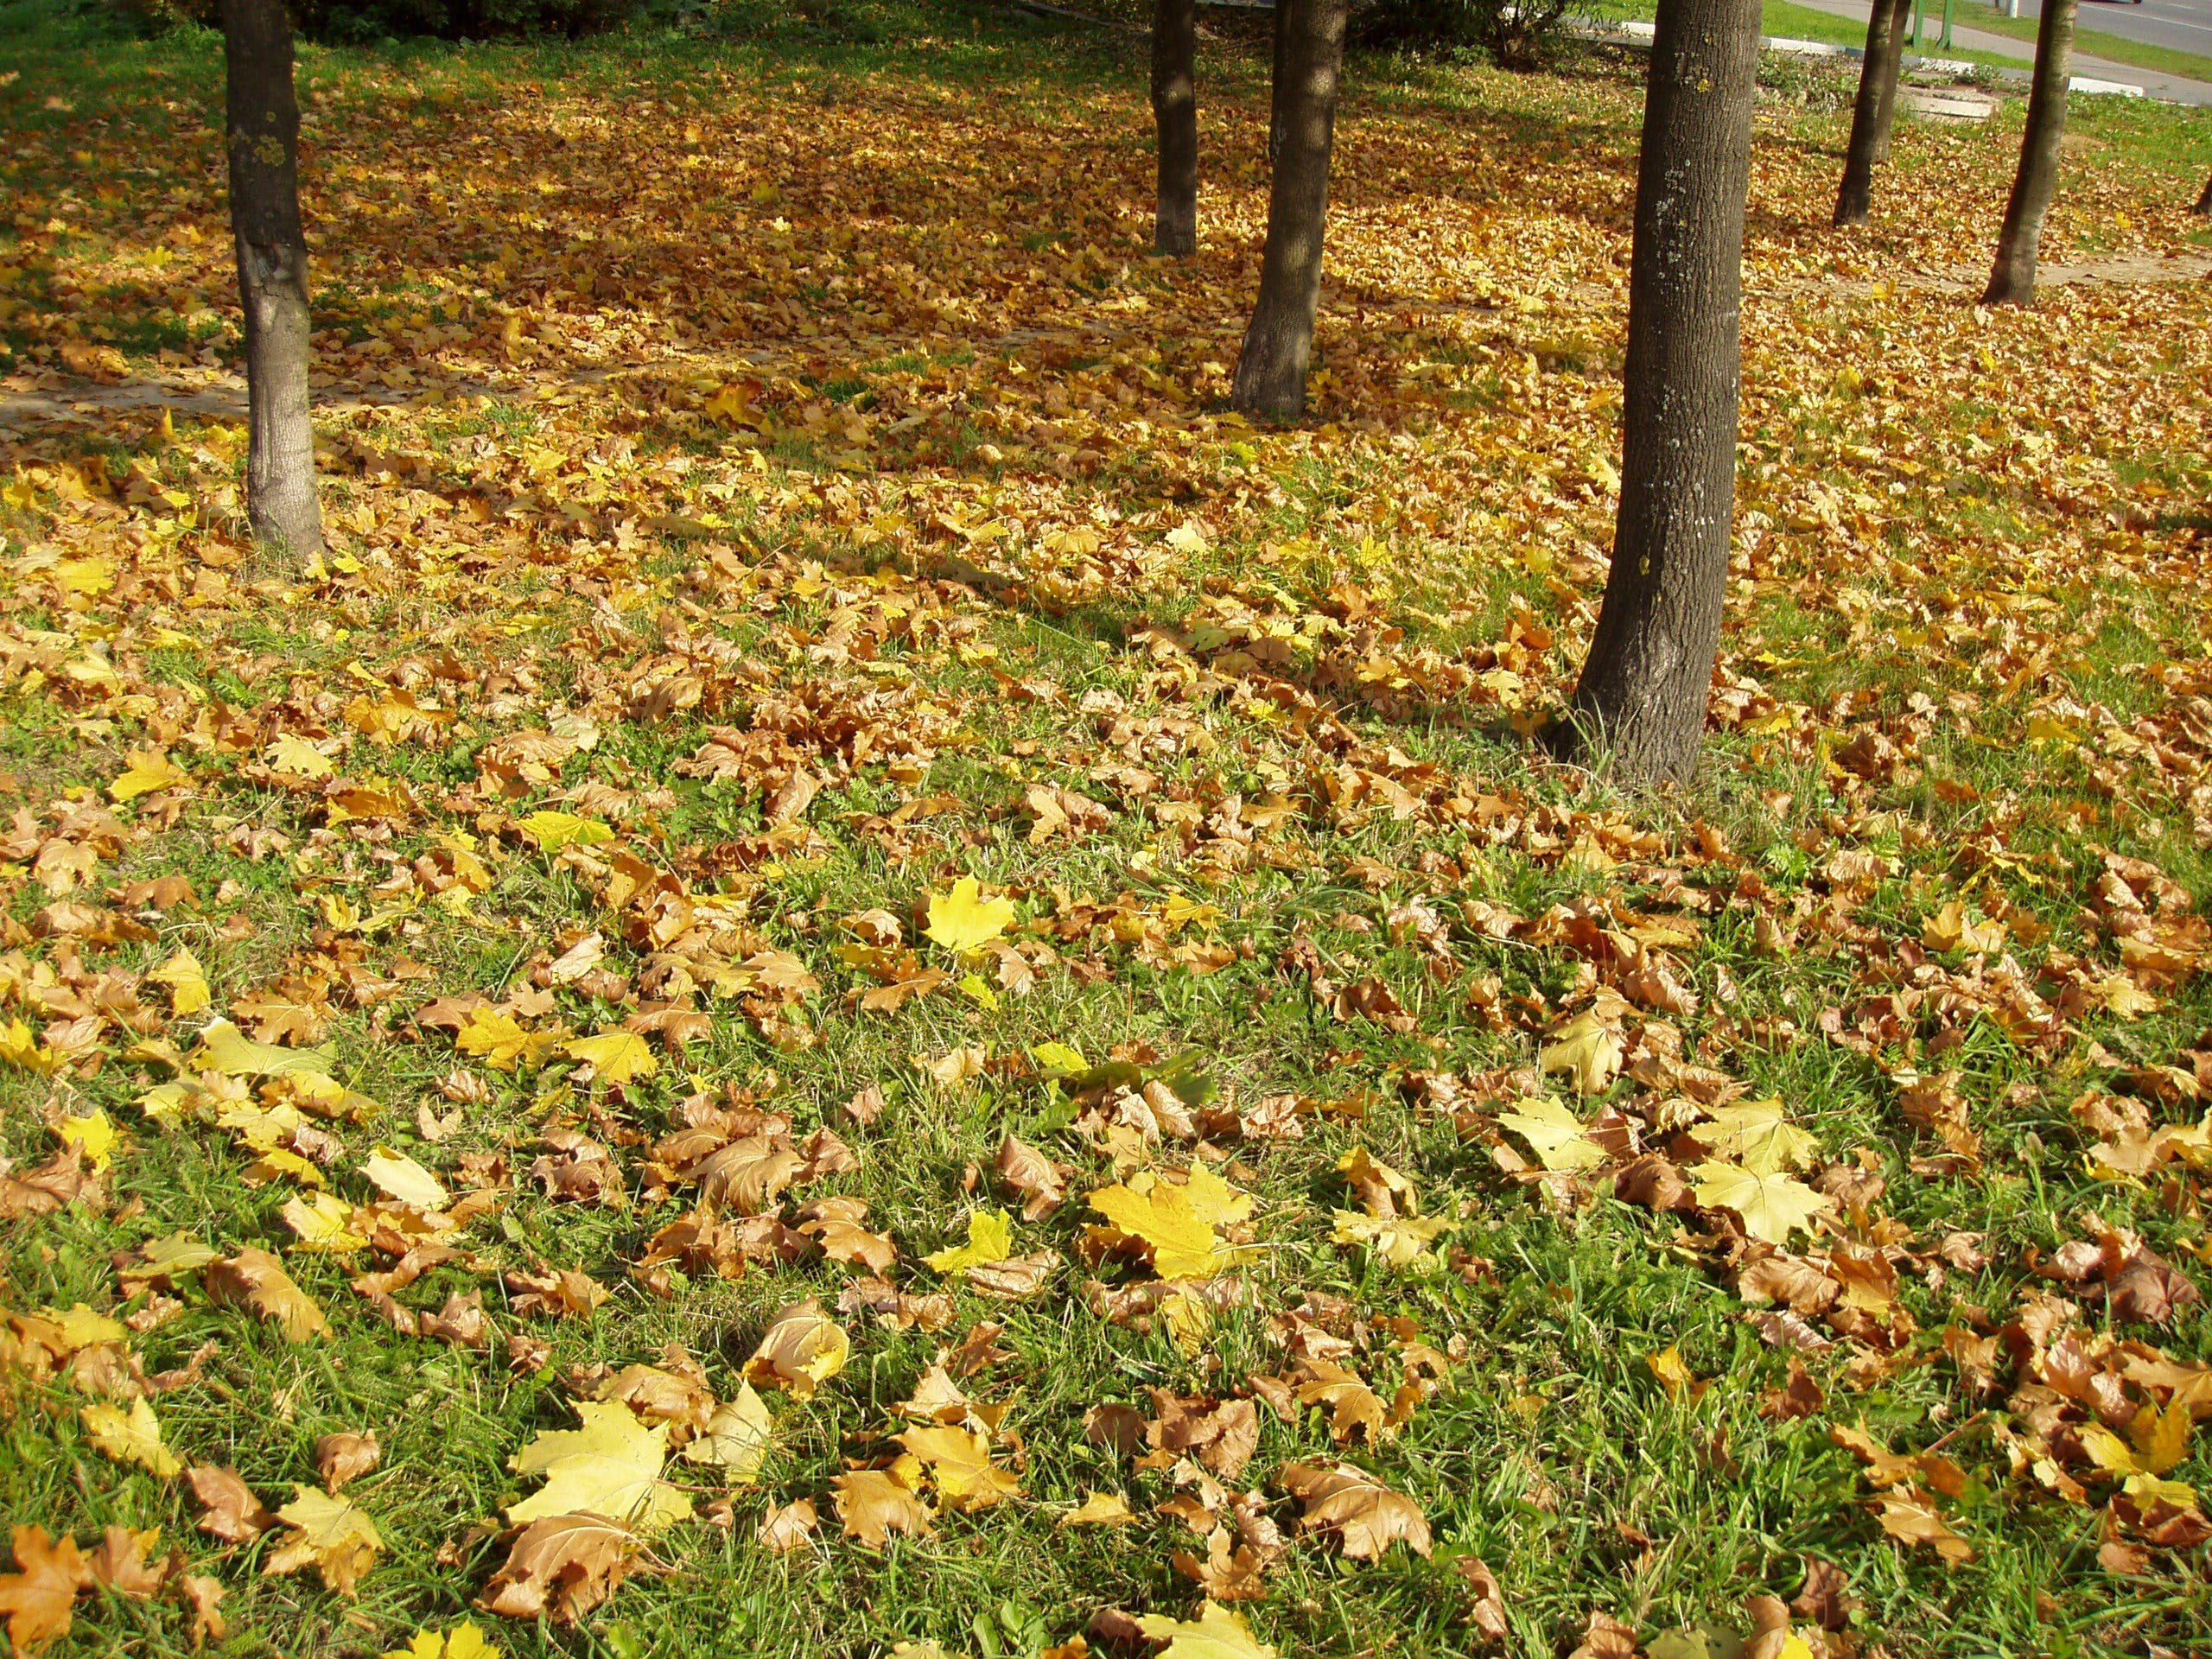 Free stock photo of dried leaves, grass, ground, park